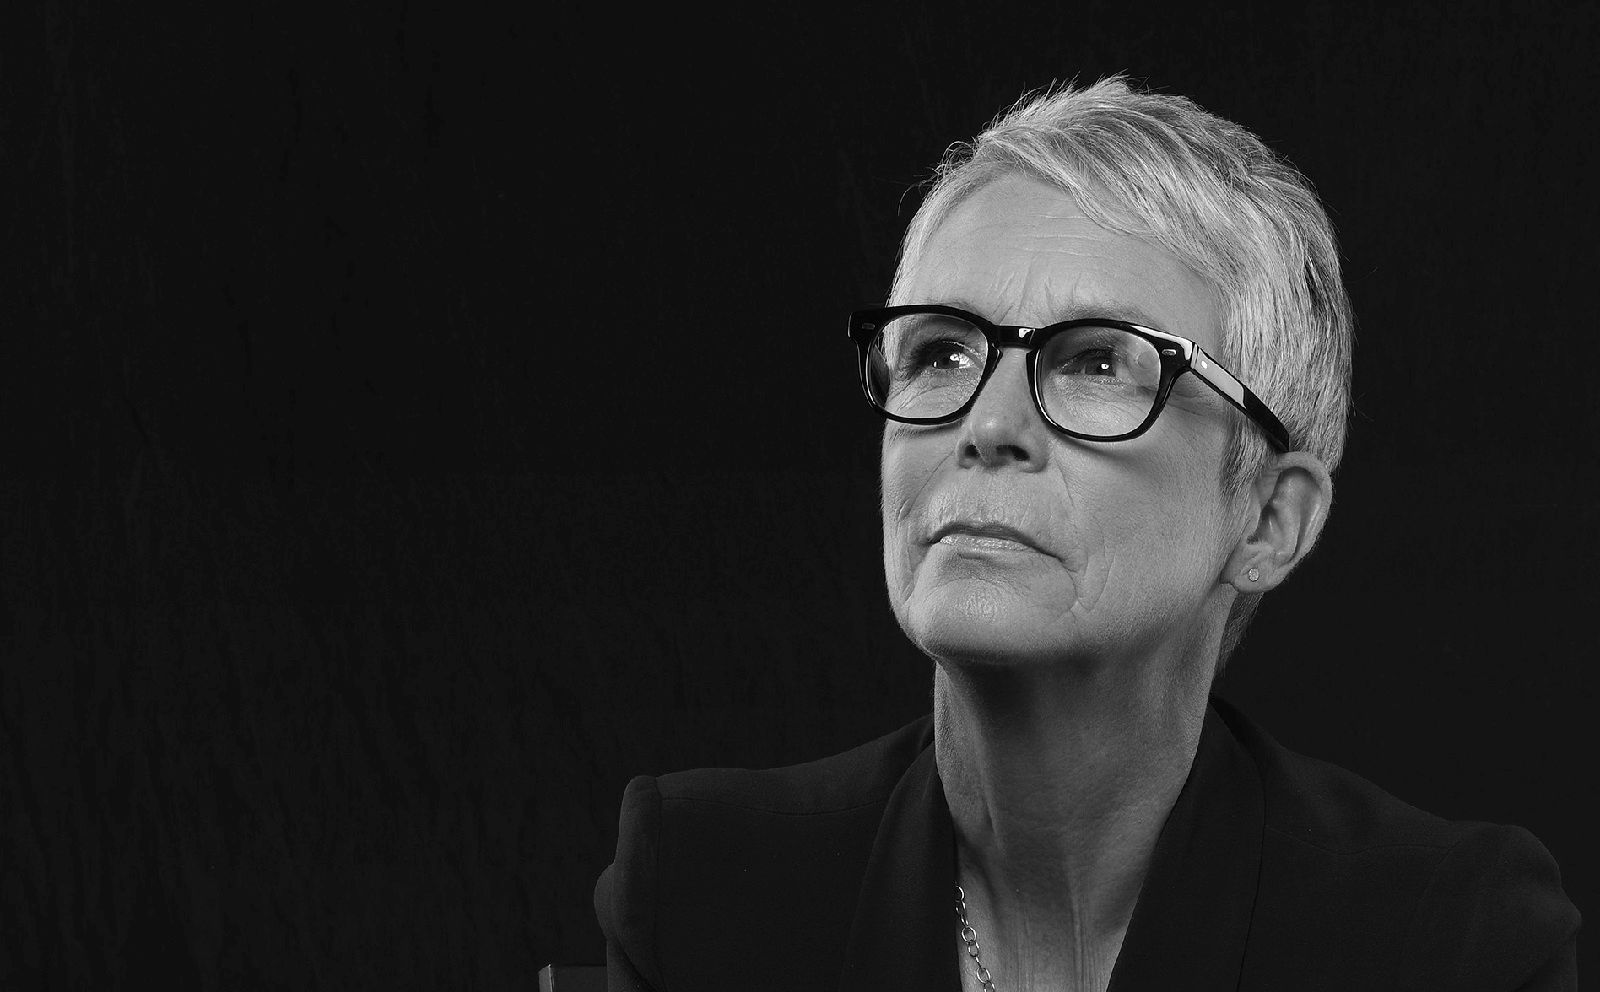 Exclusive - All Round Mandatory Credit: Photo by Andrew H. Walker/Variety/REX/Shutterstock (9765773gd) Jamie Lee Curtis - 'Halloween' Exclusive - Variety Portrait Studio Comic-Con, Day 2, San Diego, USA - 20 Jul 2018